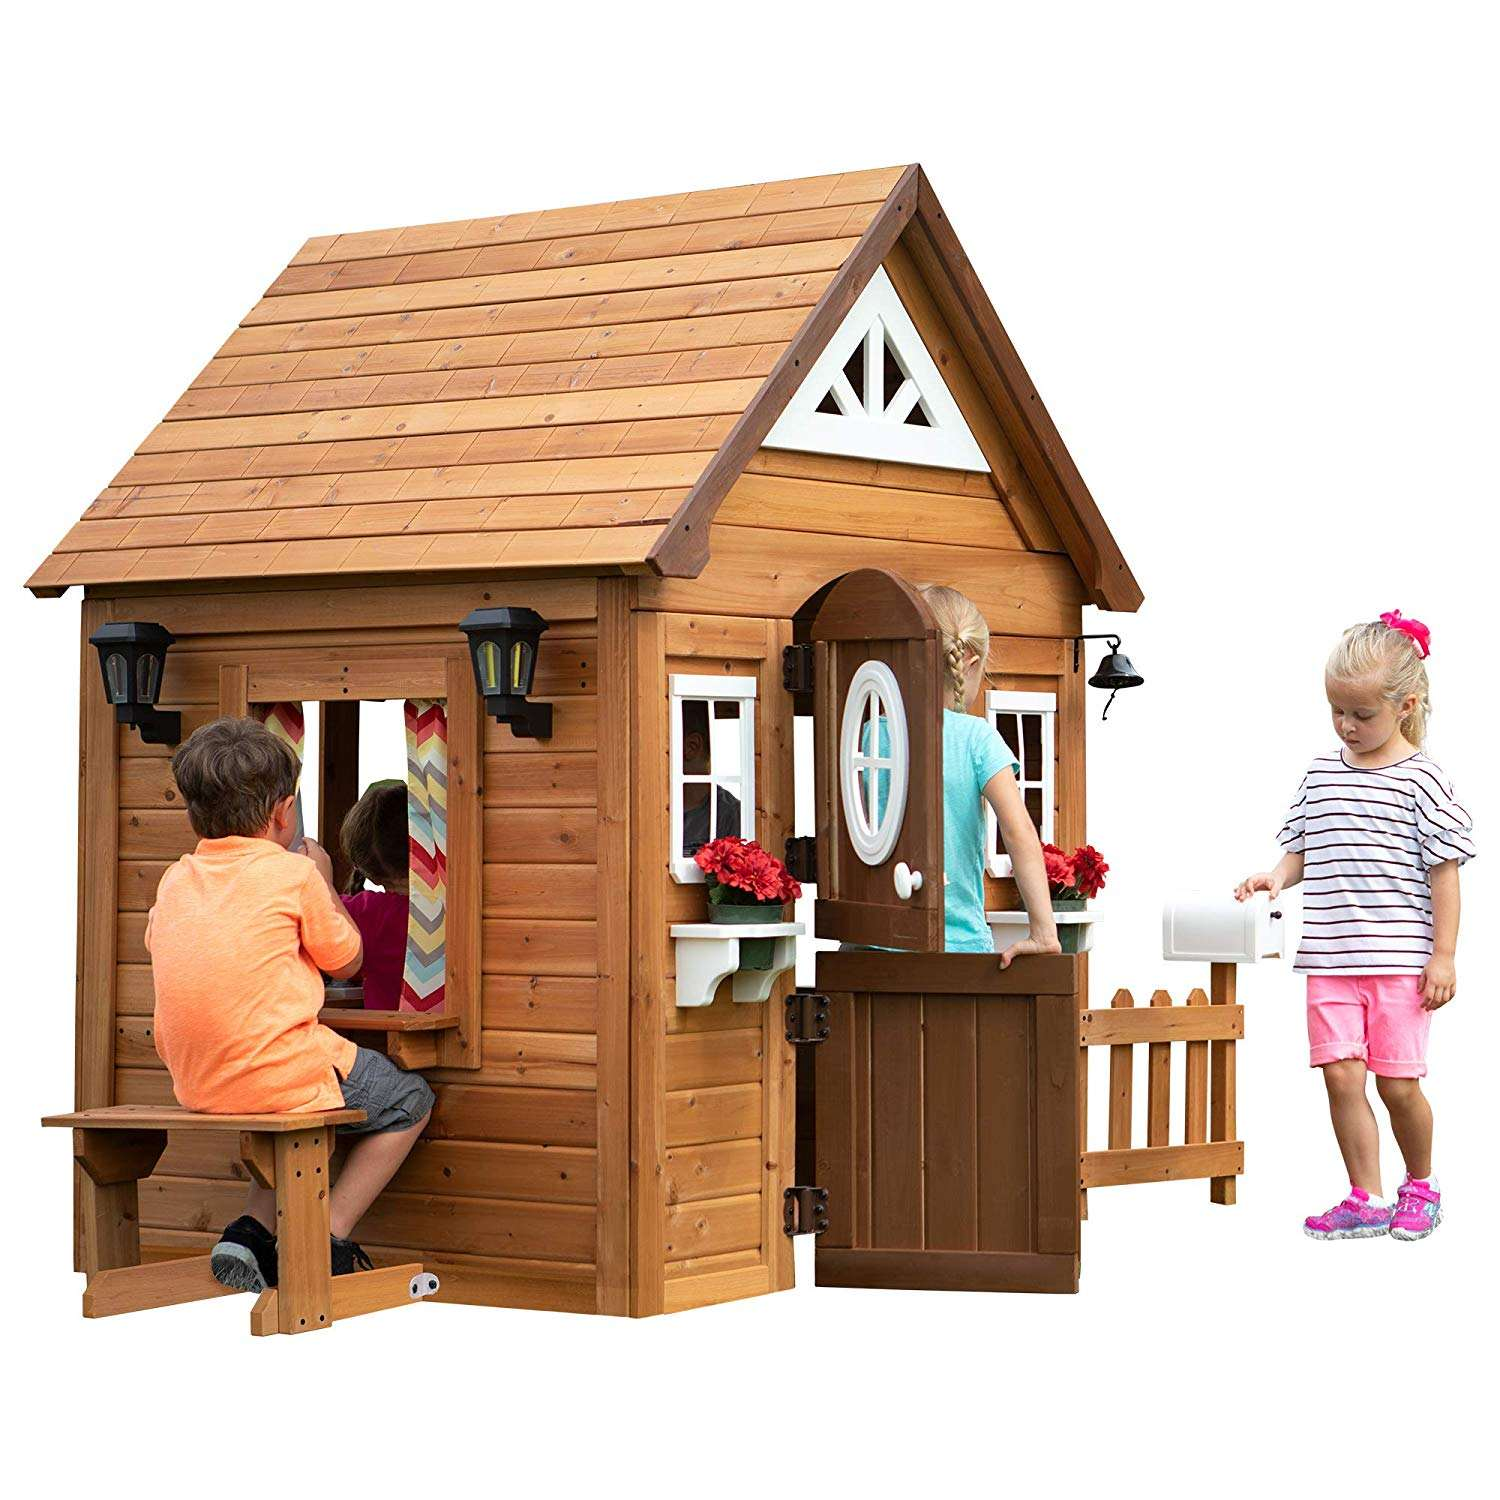 2021 4-5 people outdoor kids playhouse garden wood